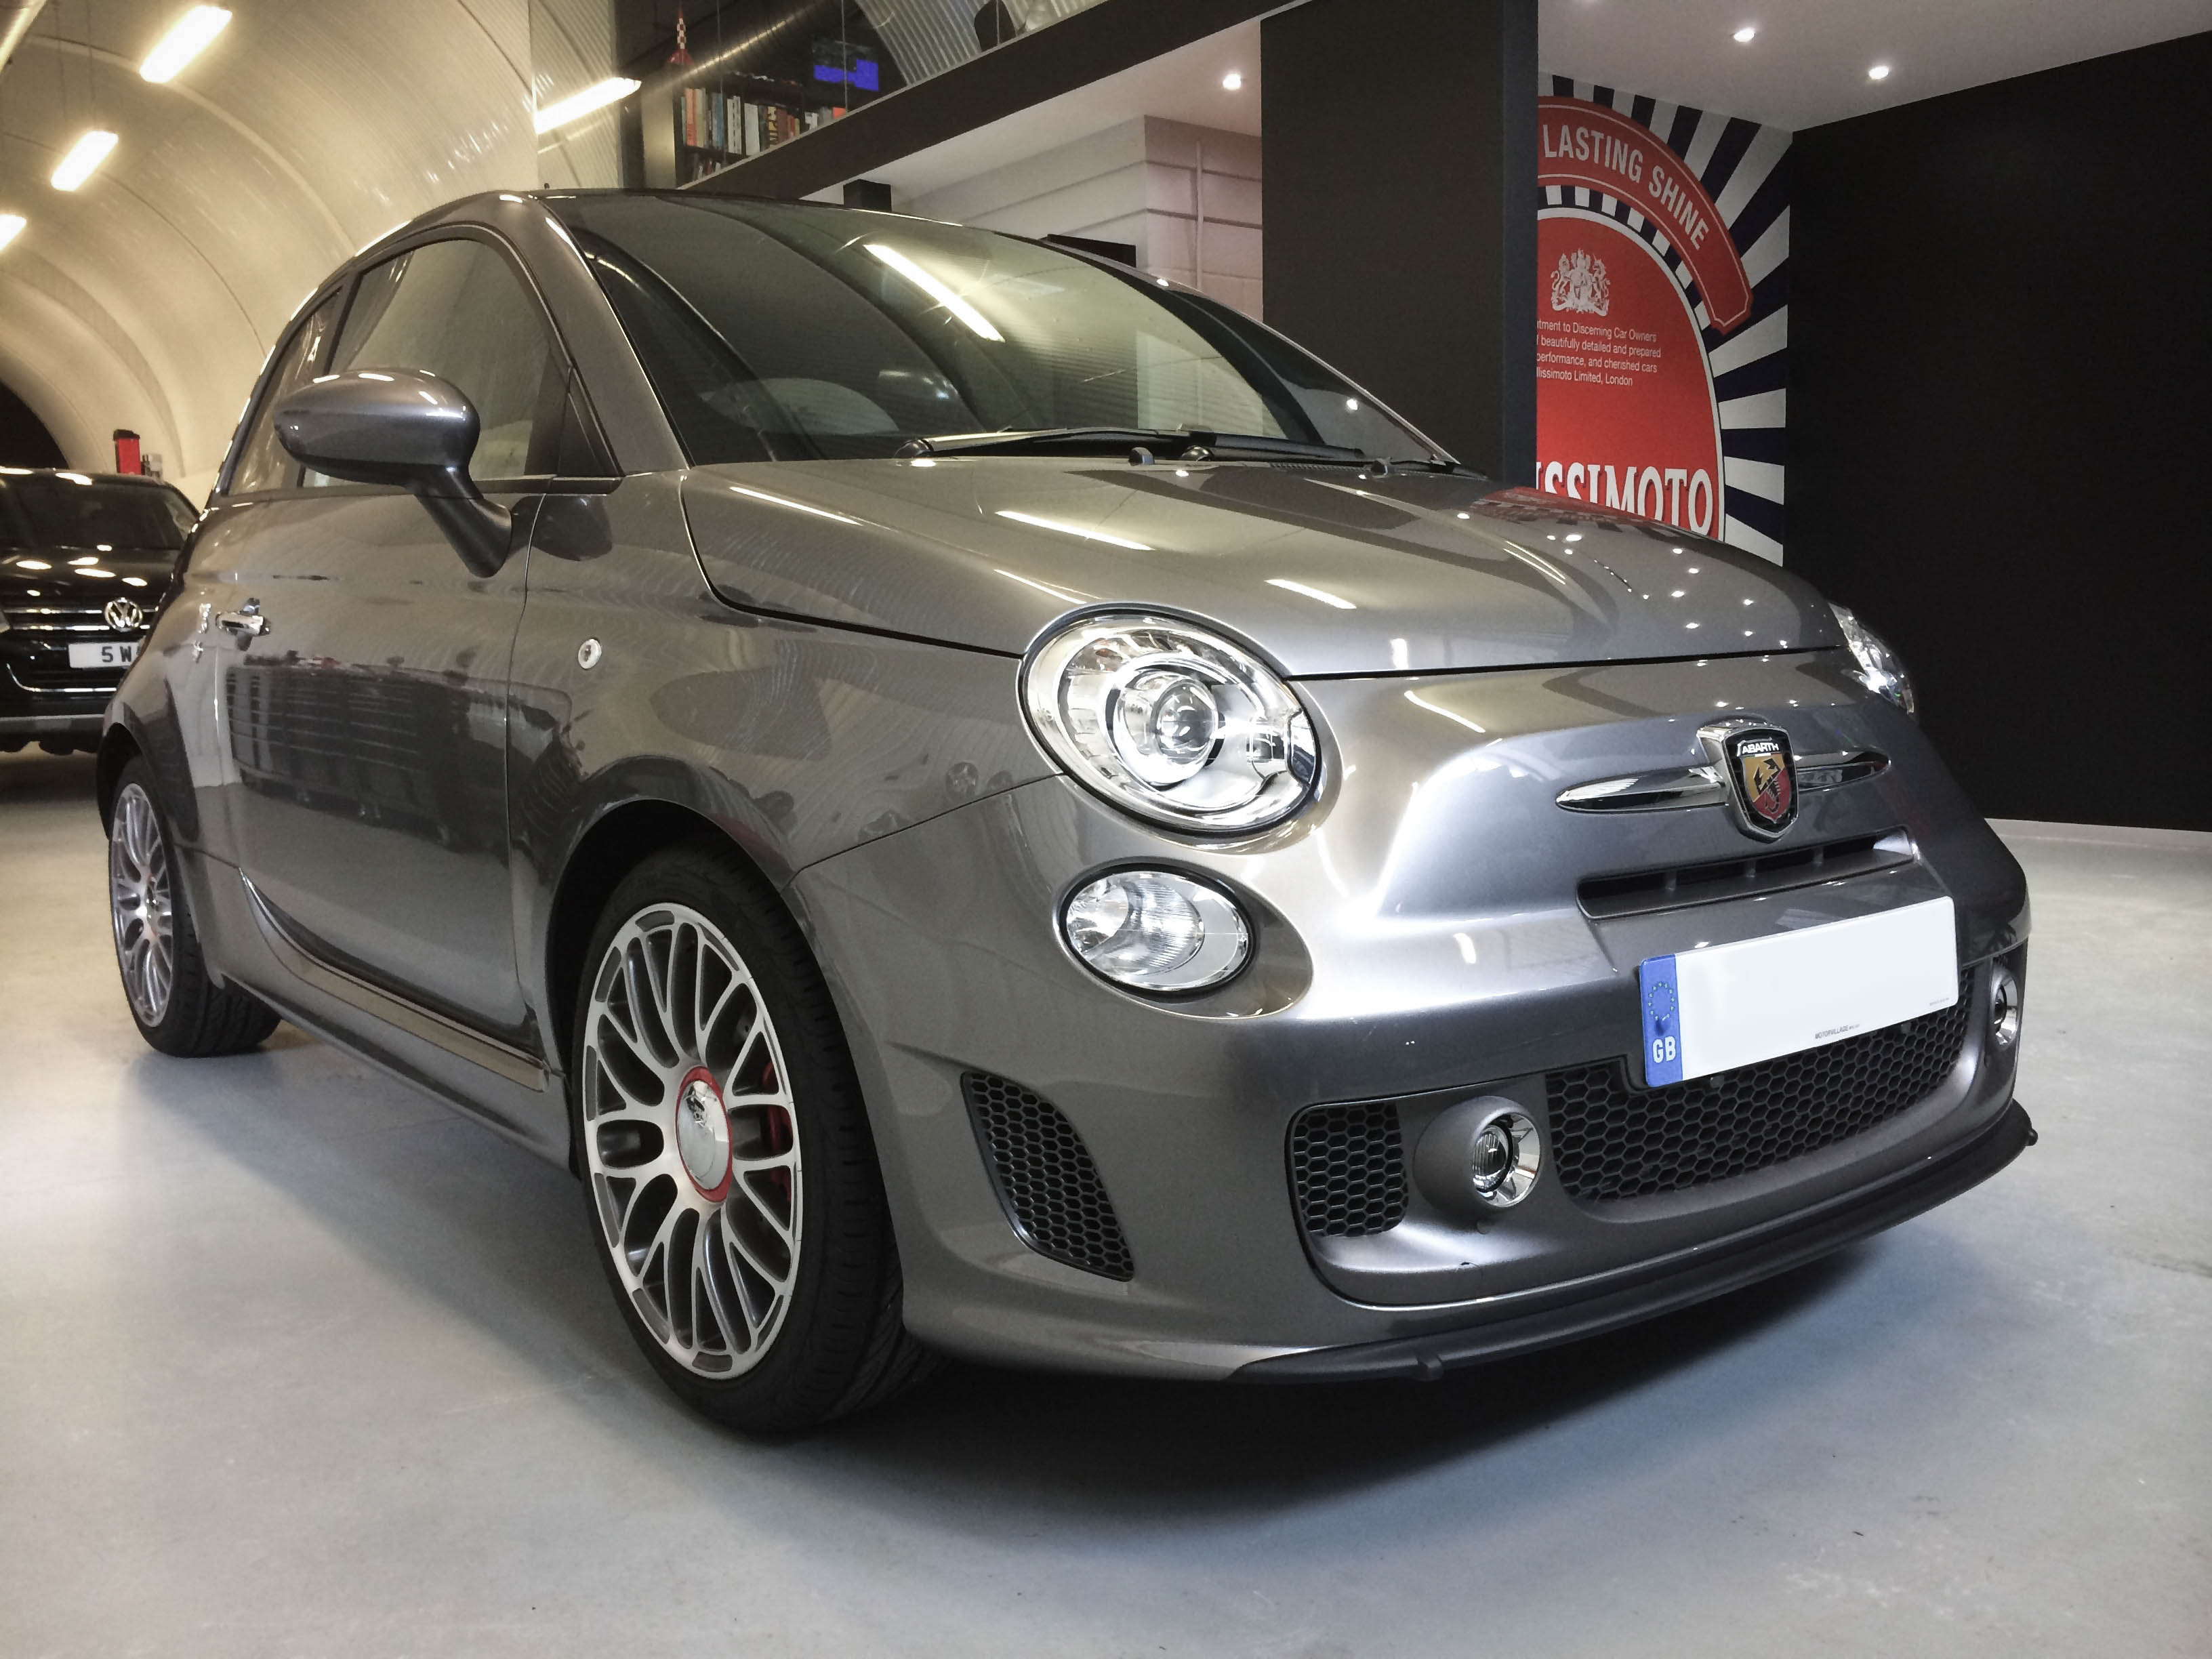 Fiat Abarth – Front